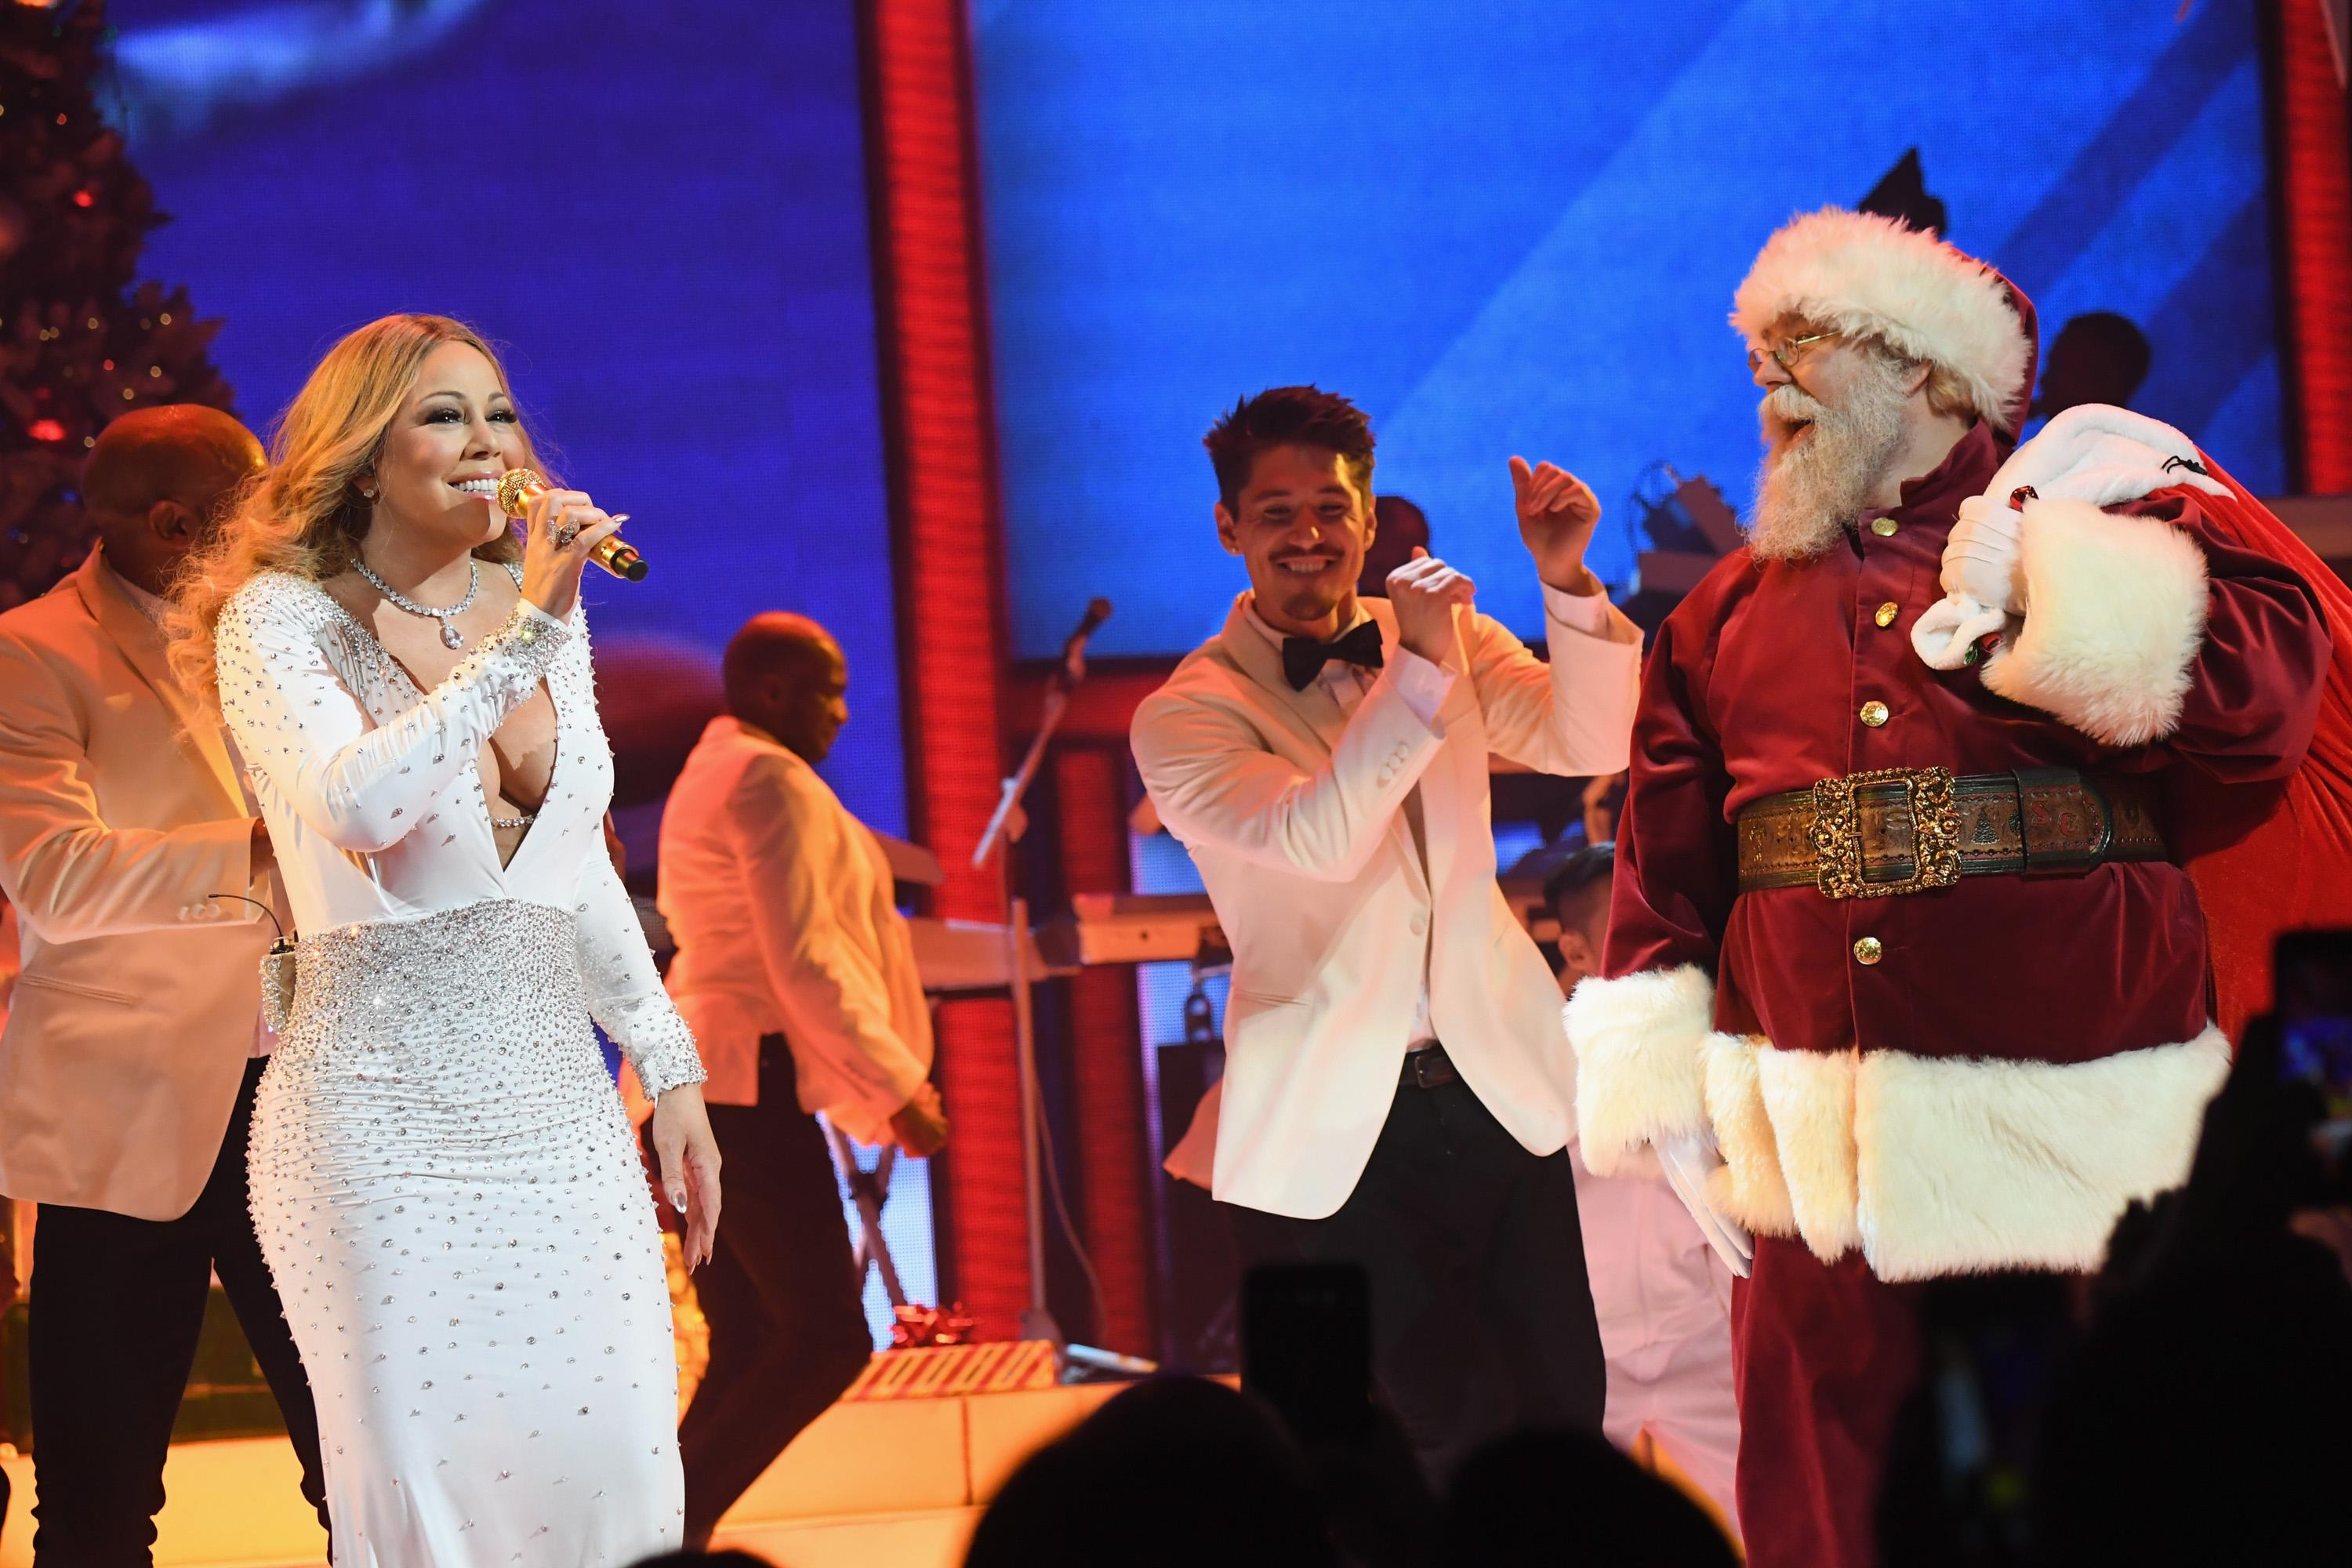 Mariah Carey has made a reported $60 million from 'All I Want For Christmas Is You' in just royalties alone